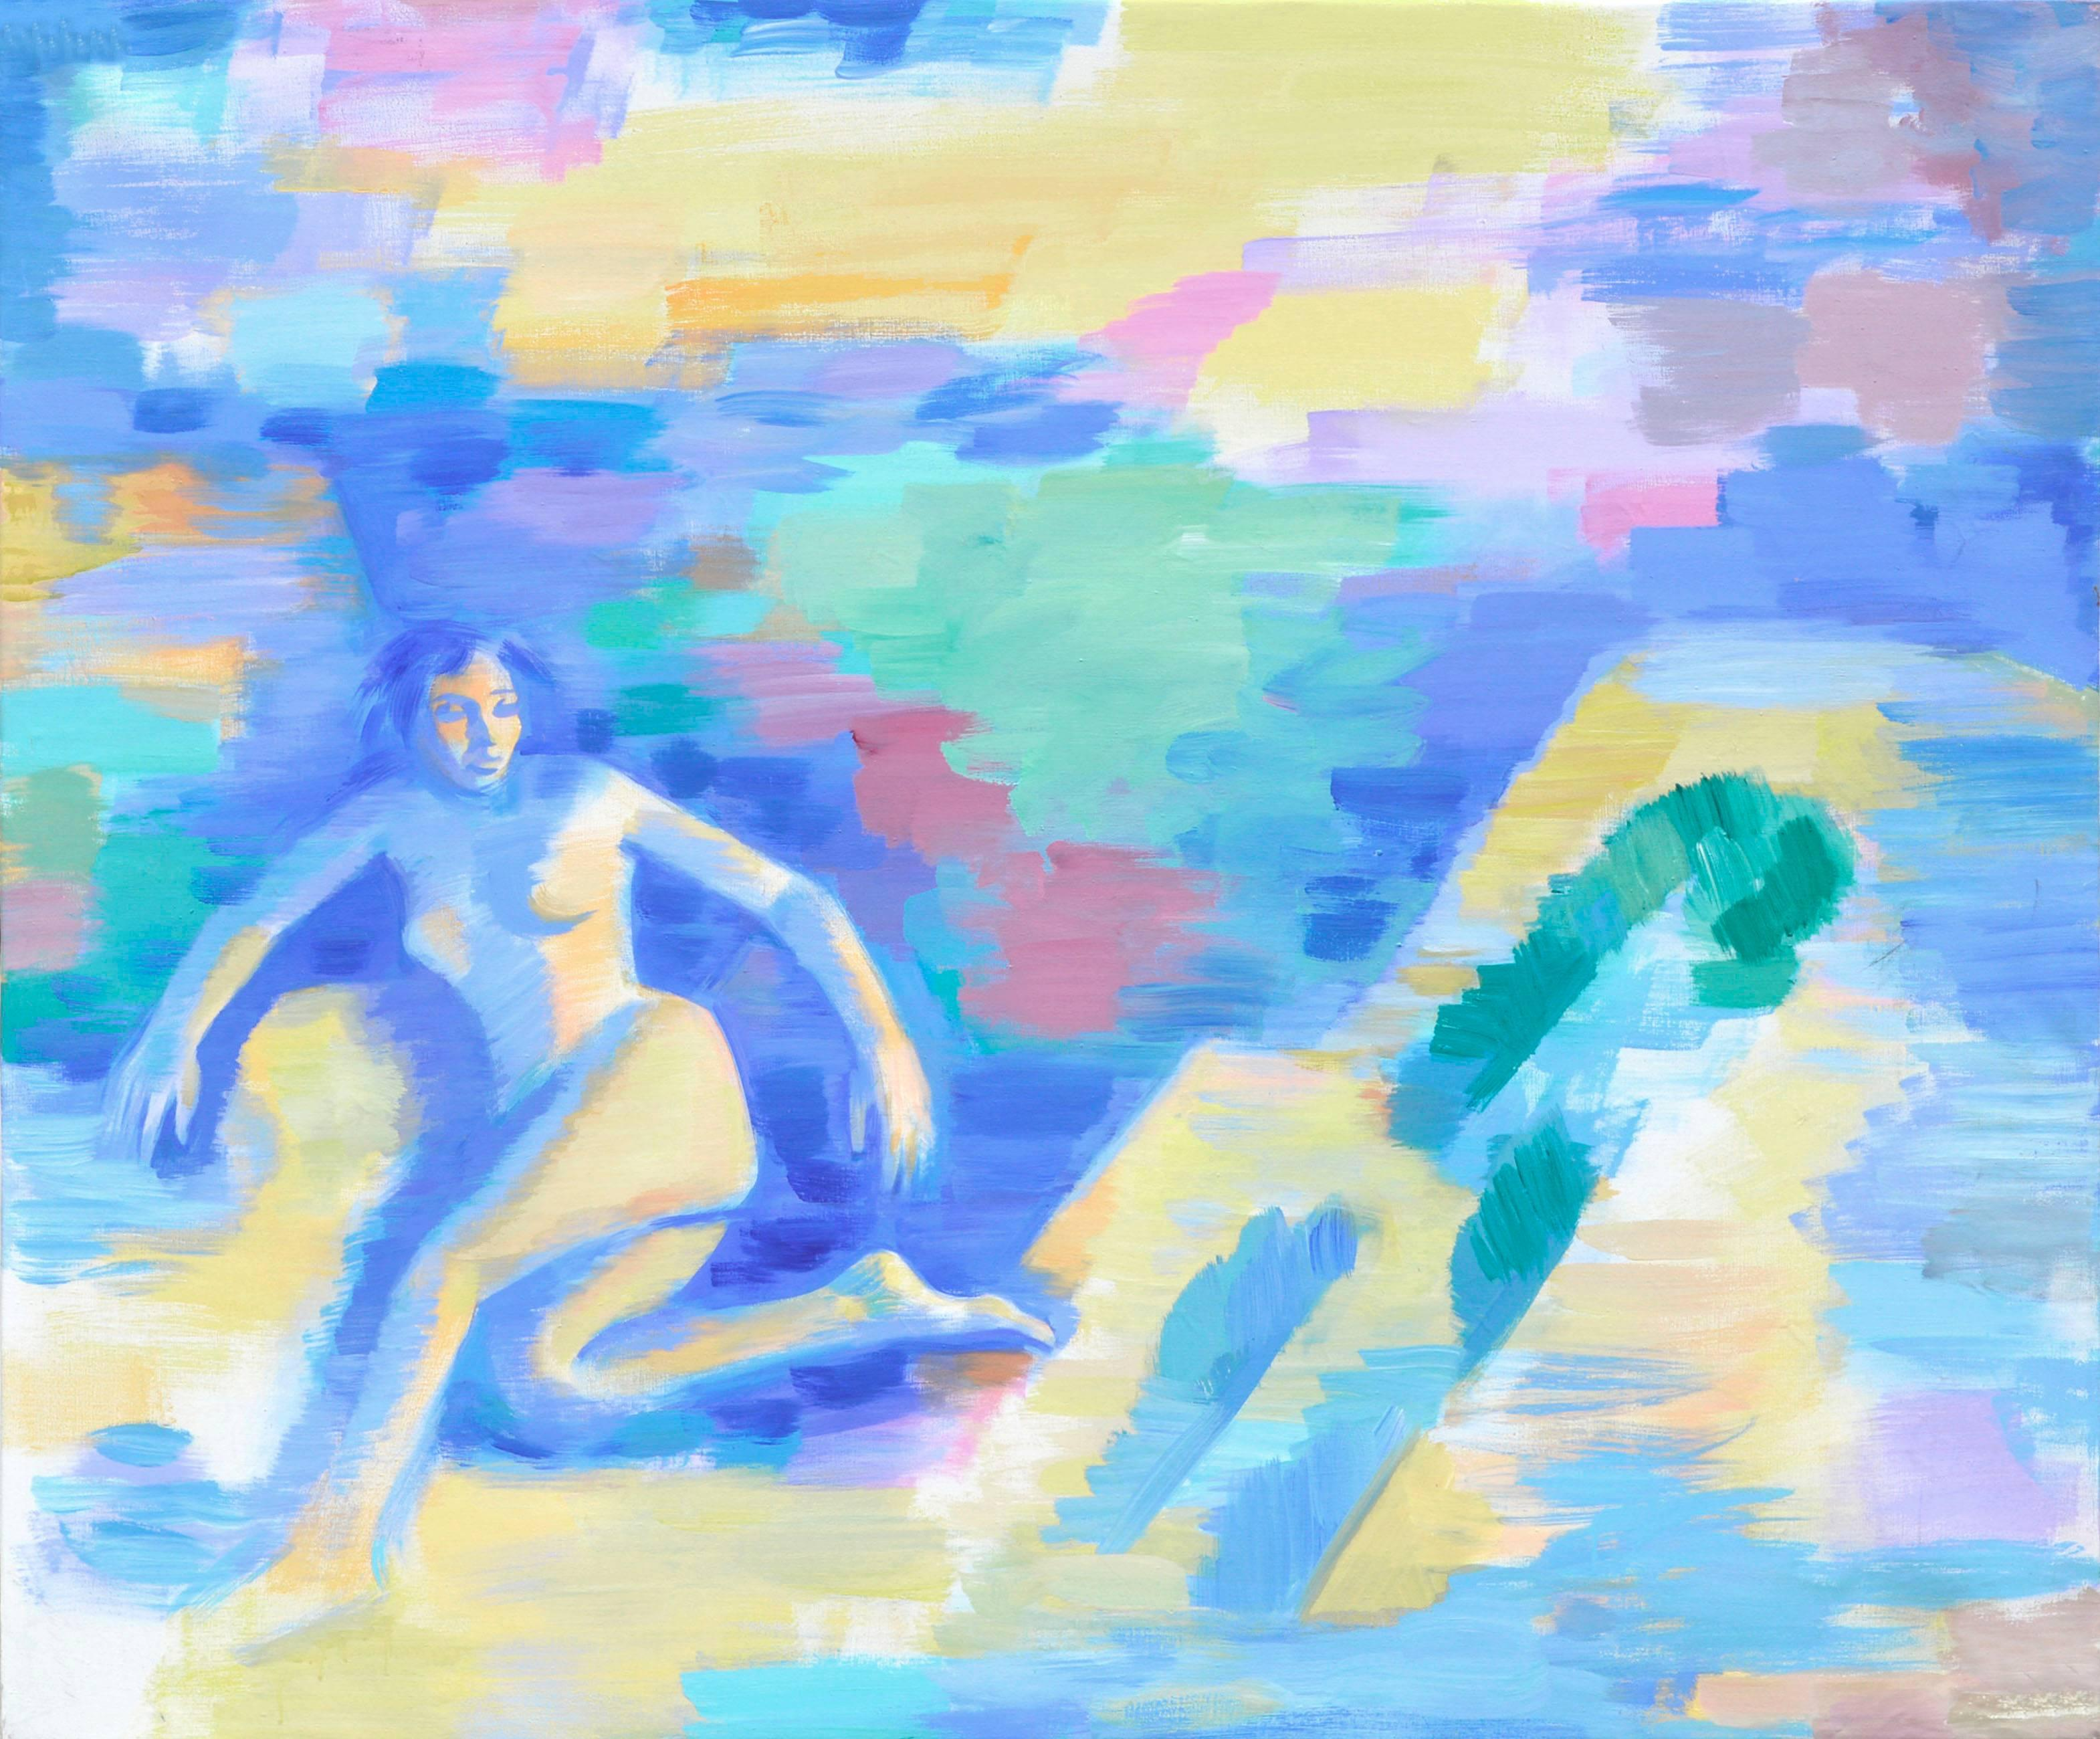 Blue Woman - Figurative Abstract